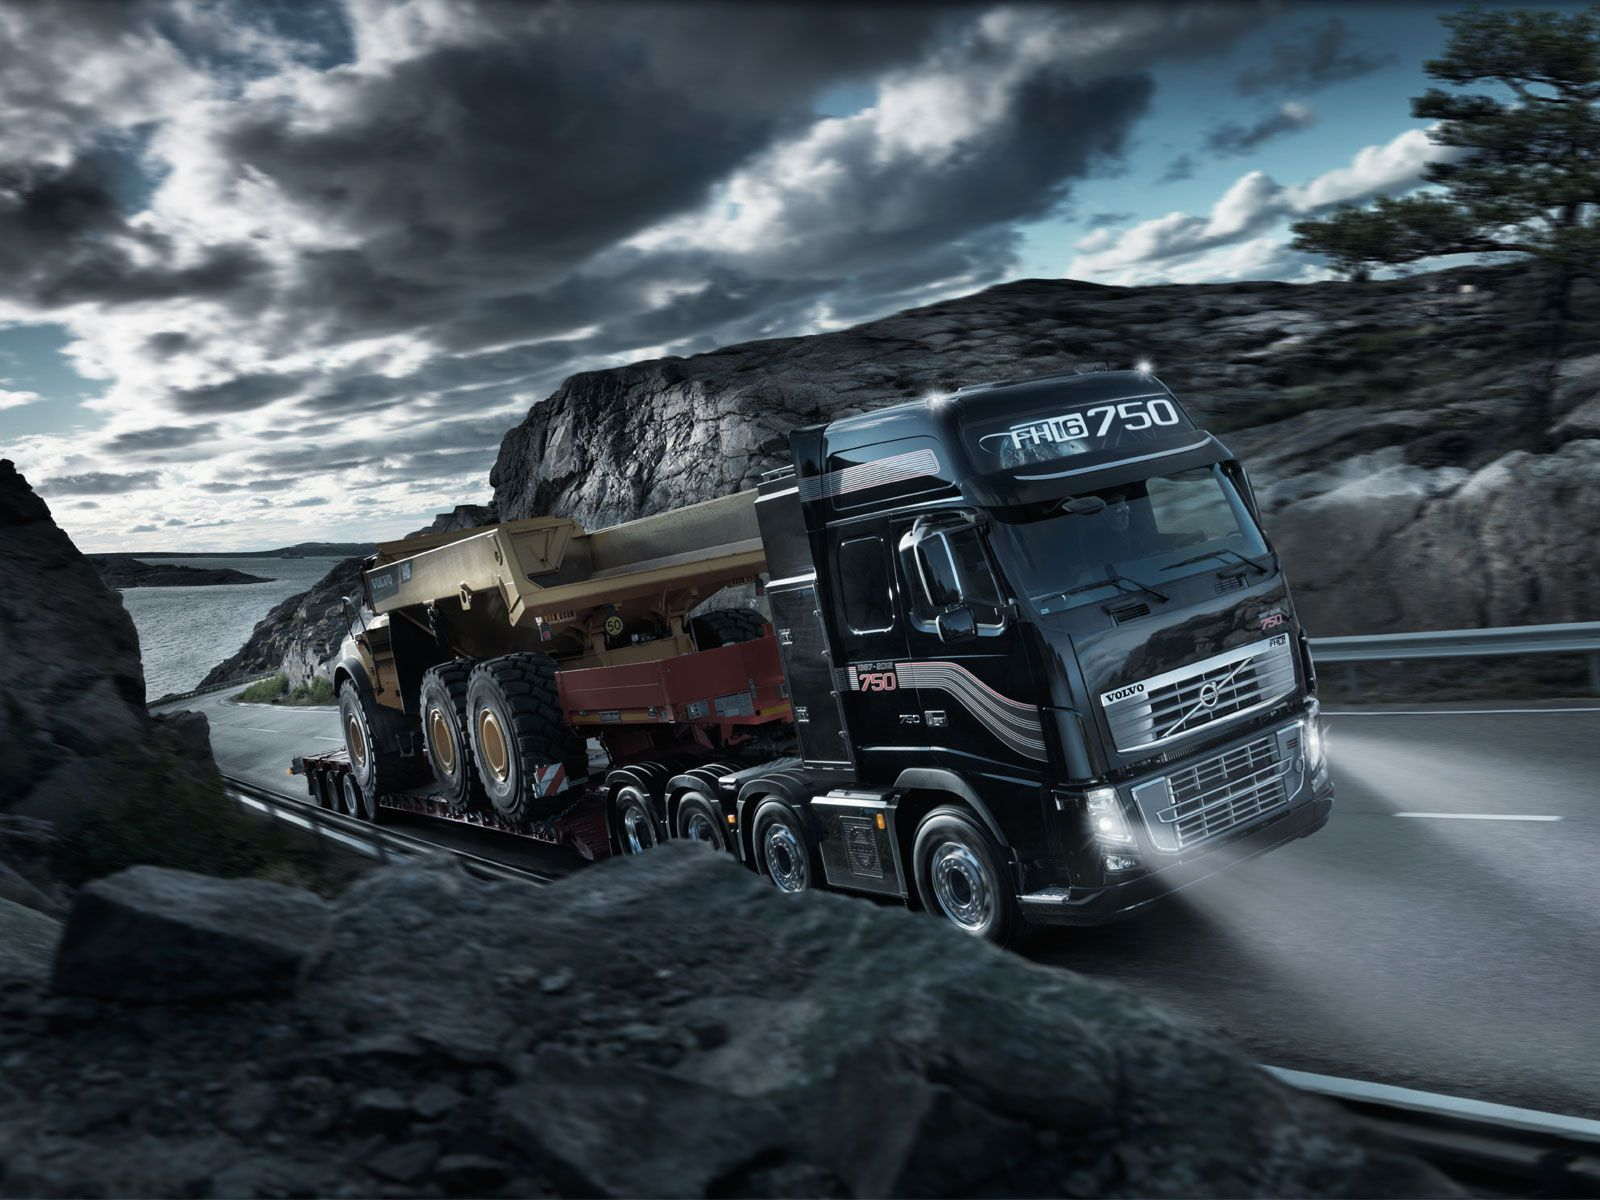 volvo truck wallpapers high resolution. volvo fh16 750 gallery trucks truck wallpapers high resolution e